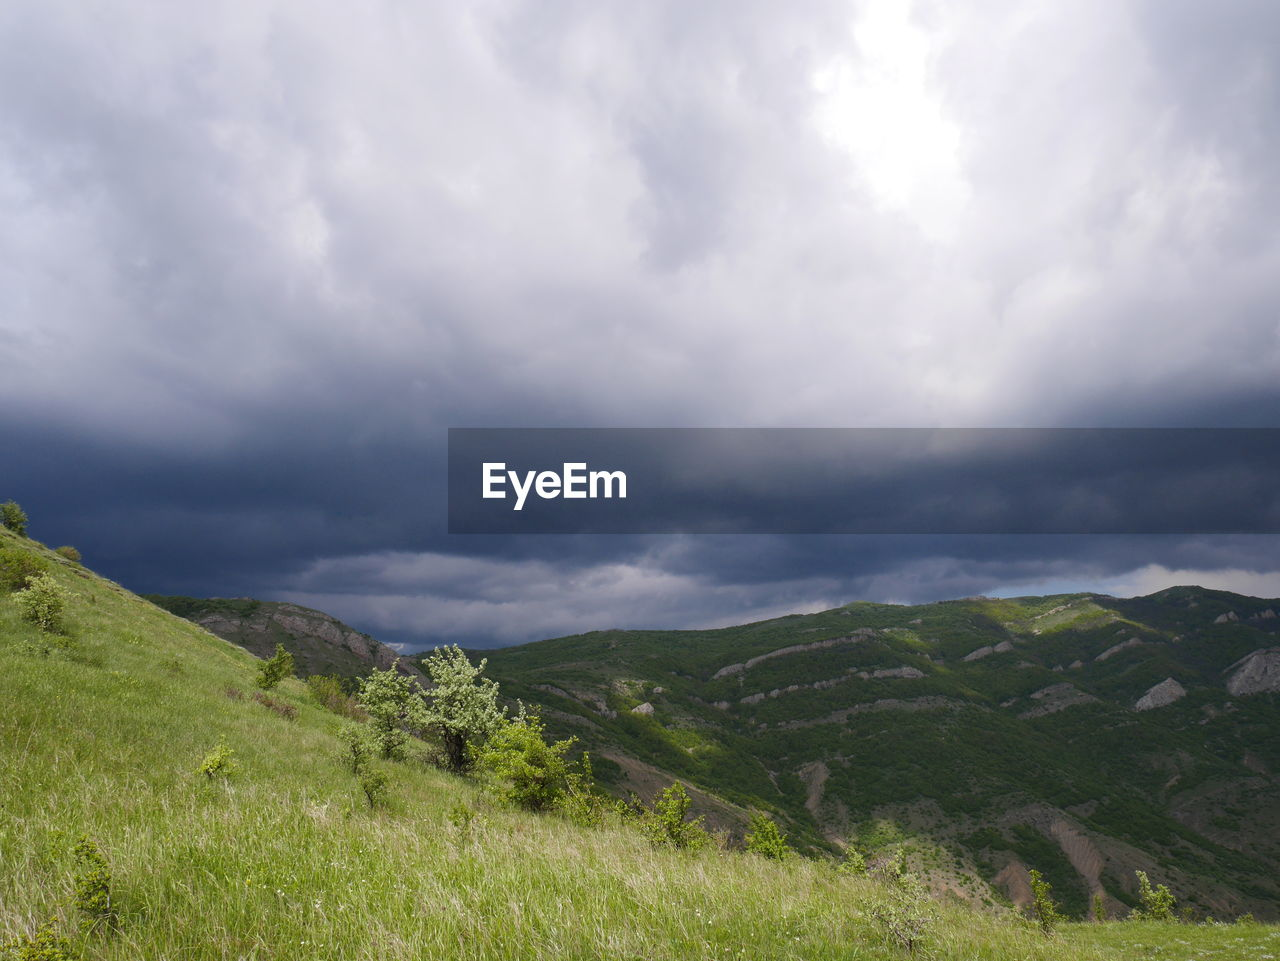 Scenic view of grassy mountain against cloudy sky